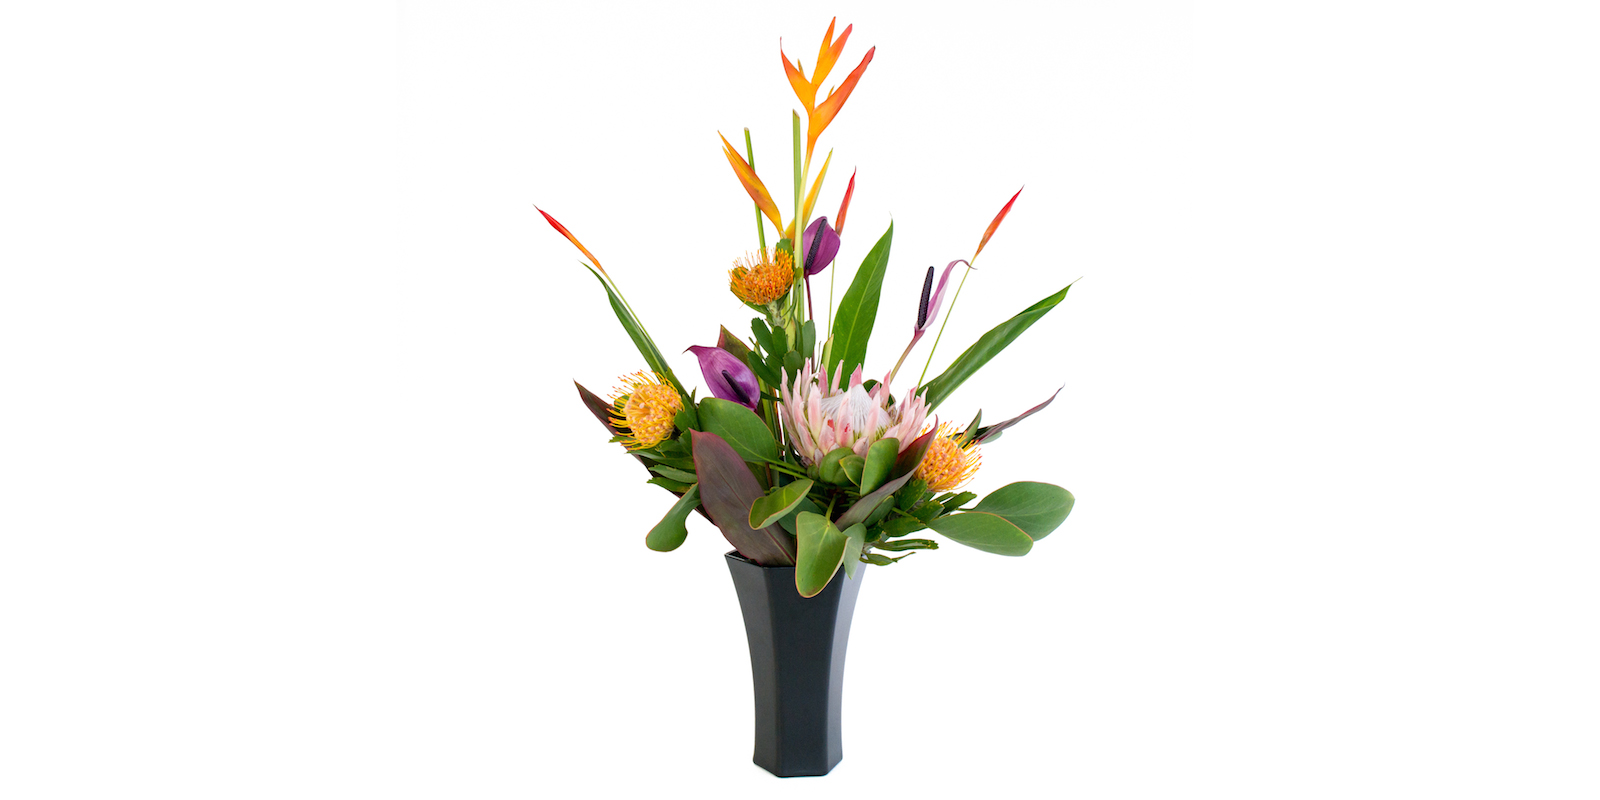 tropical flowers with protea, heliconia, purple arc anthurium